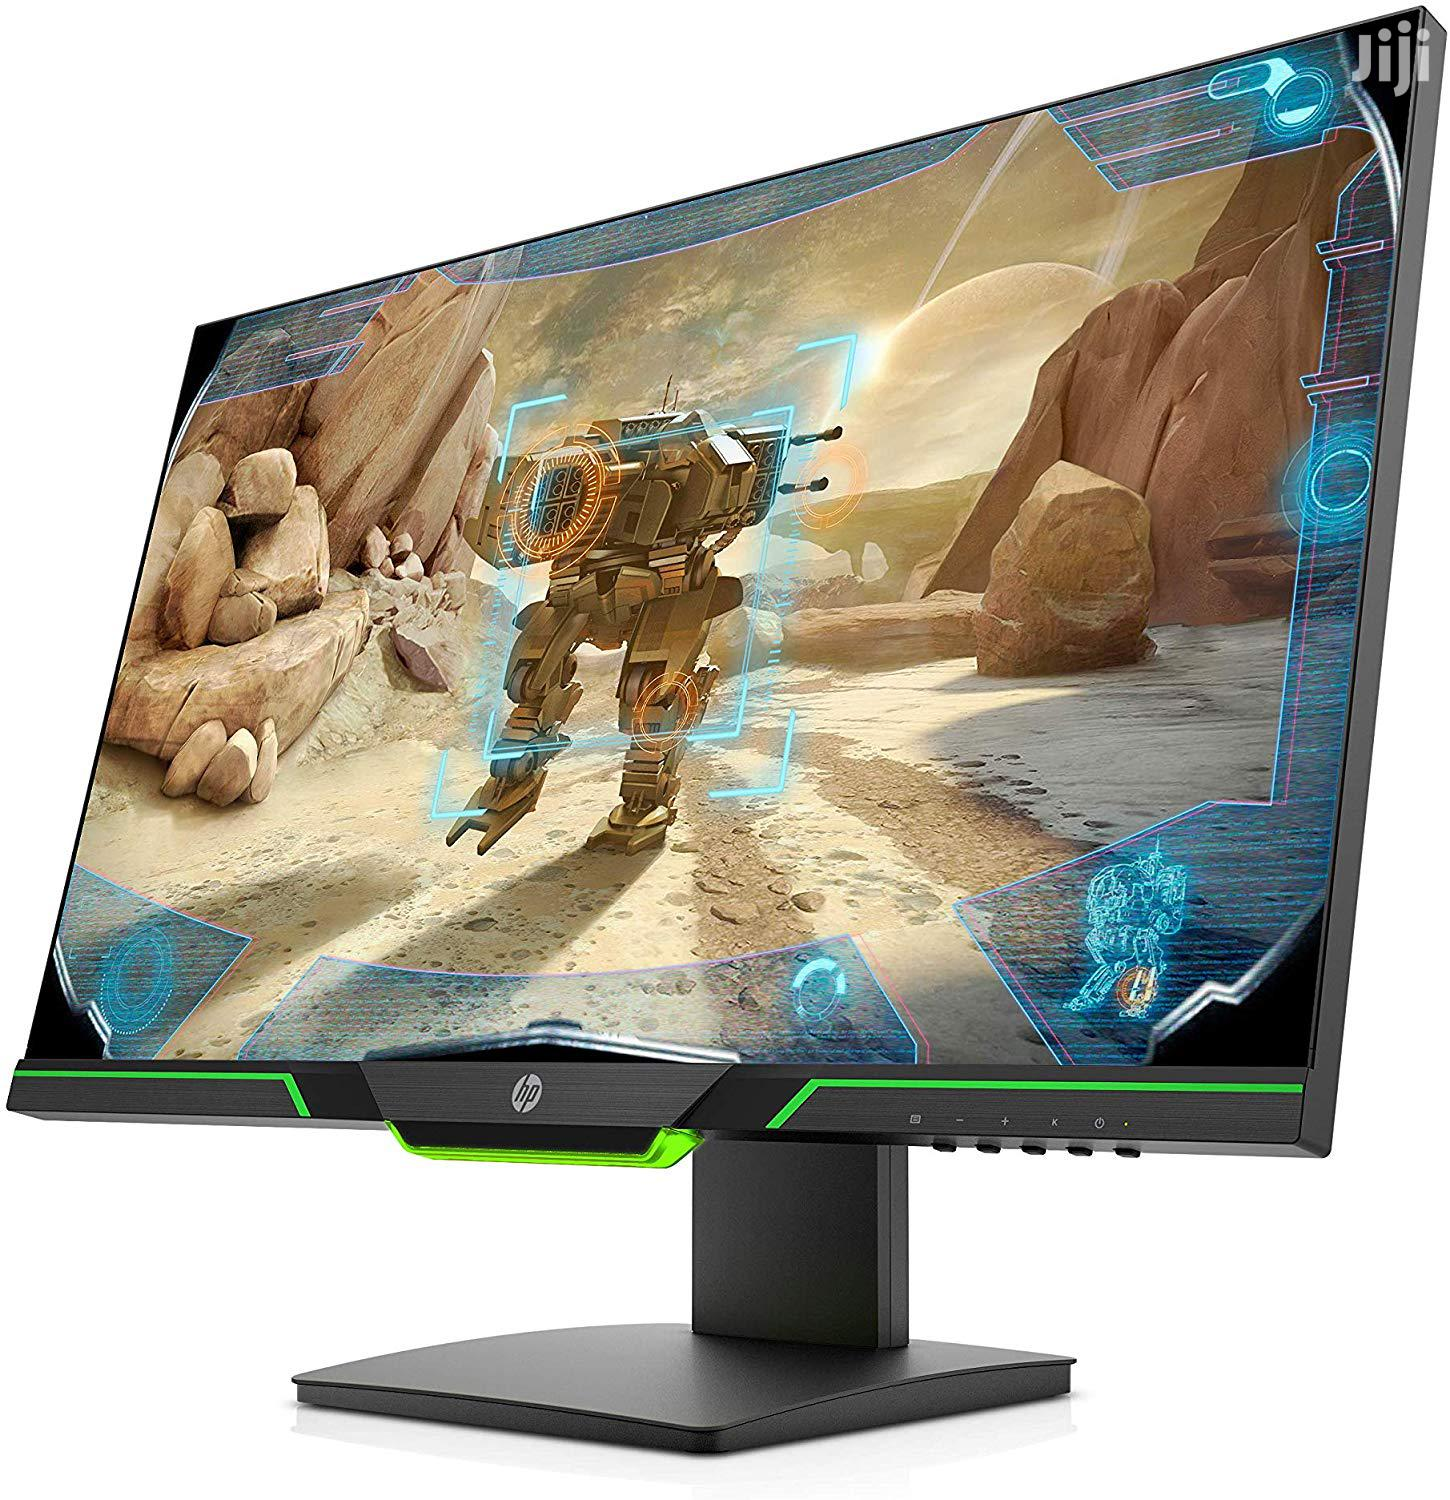 Archive: HP 27x FHD Gaming Monitor 27 Inch With AMD Freesync